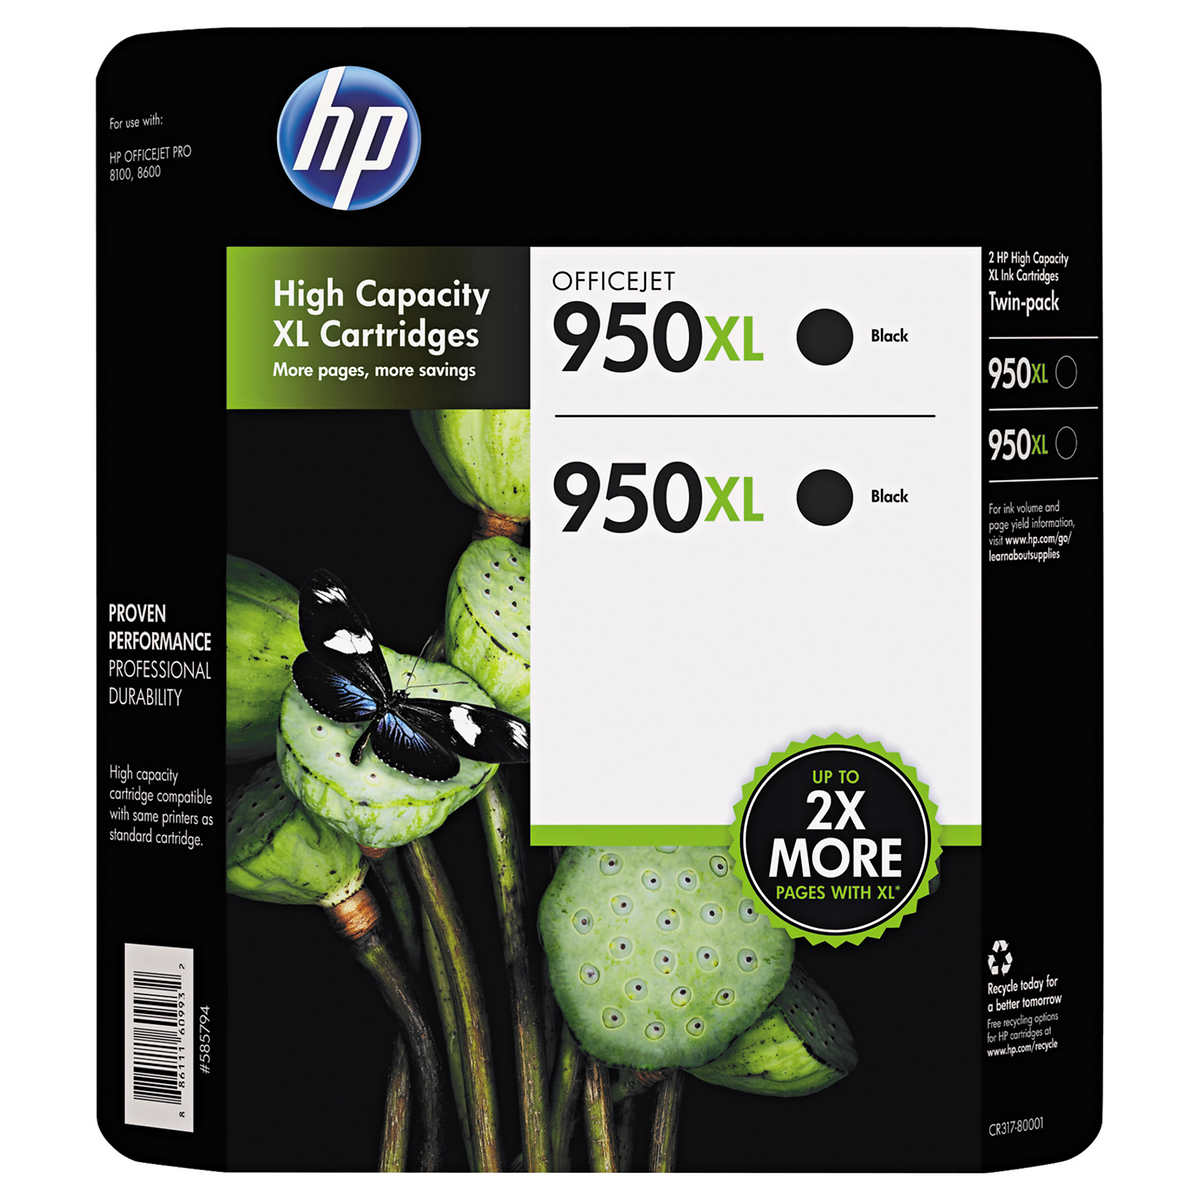 2,300 Pages 2 Pack Smart Print Supplies Compatible 950XL 950XL High Yield Ink Cartridge Replacement for HP OfficeJet Pro 251DW 276DW MFP Printers